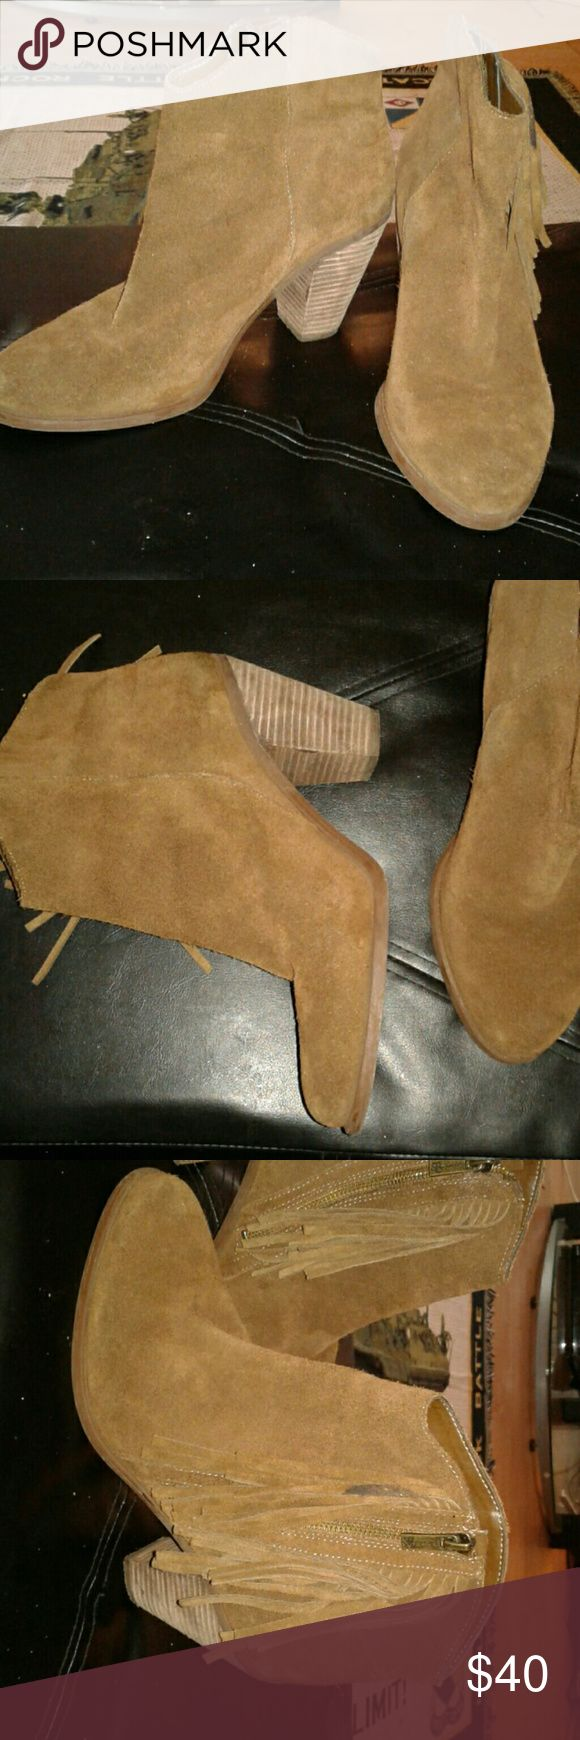 Suede Jessica Simpson Boots Very beautiful Jessica Simpson boots with tassels. I have only worn them a couple of times. Jessica Simpson Shoes